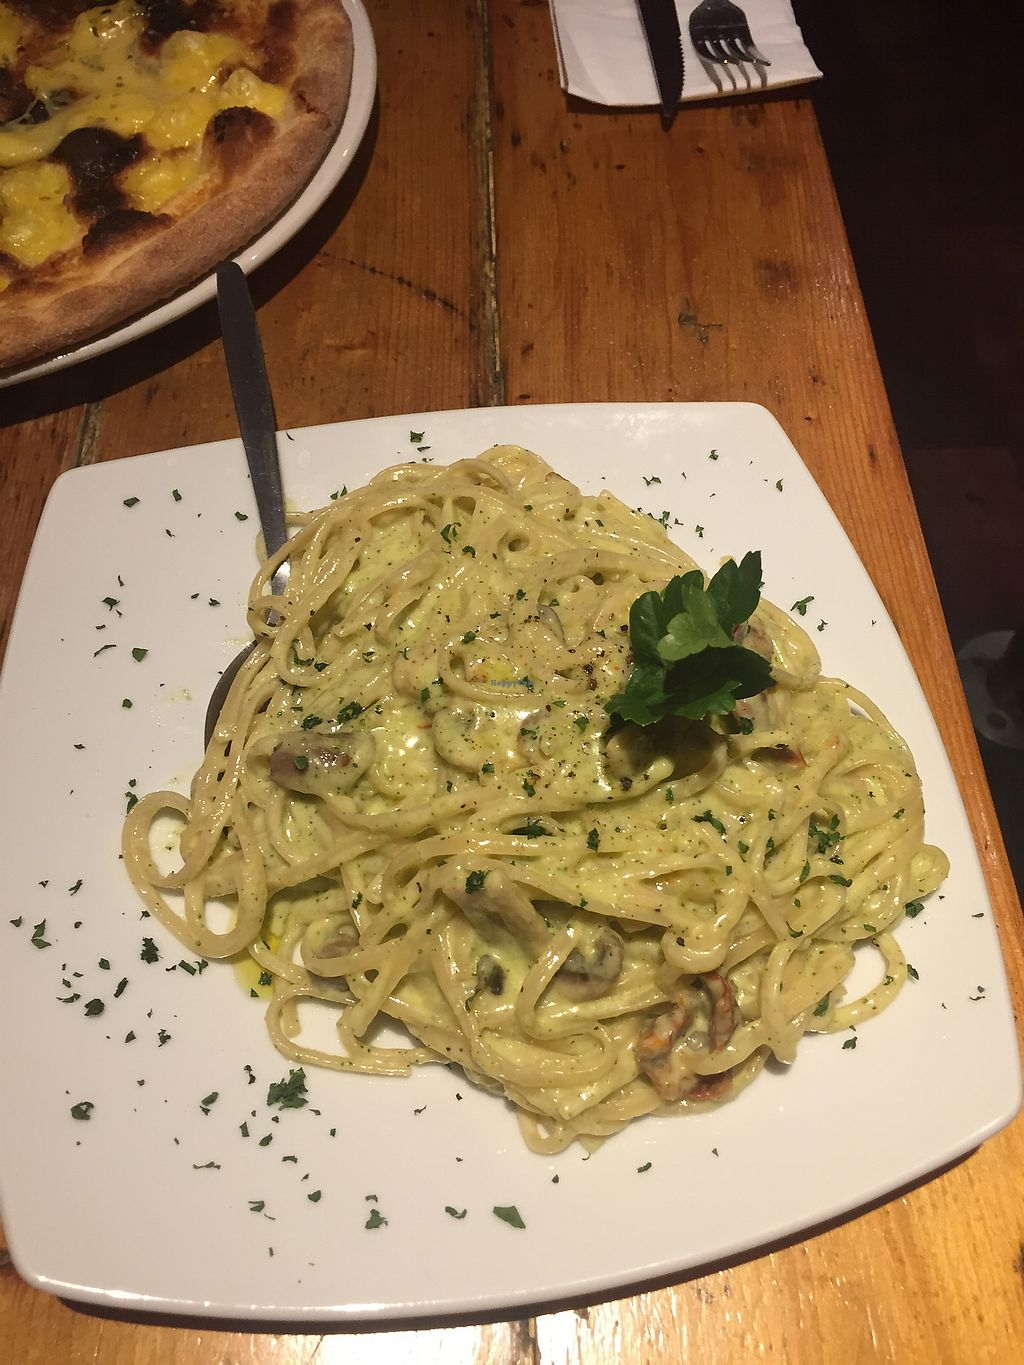 """Photo of Stingray  by <a href=""""/members/profile/Yasminesan"""">Yasminesan</a> <br/>Pasta special - creamy truffle sauce with mushrooms and broccoli  <br/> January 30, 2018  - <a href='/contact/abuse/image/106706/352936'>Report</a>"""